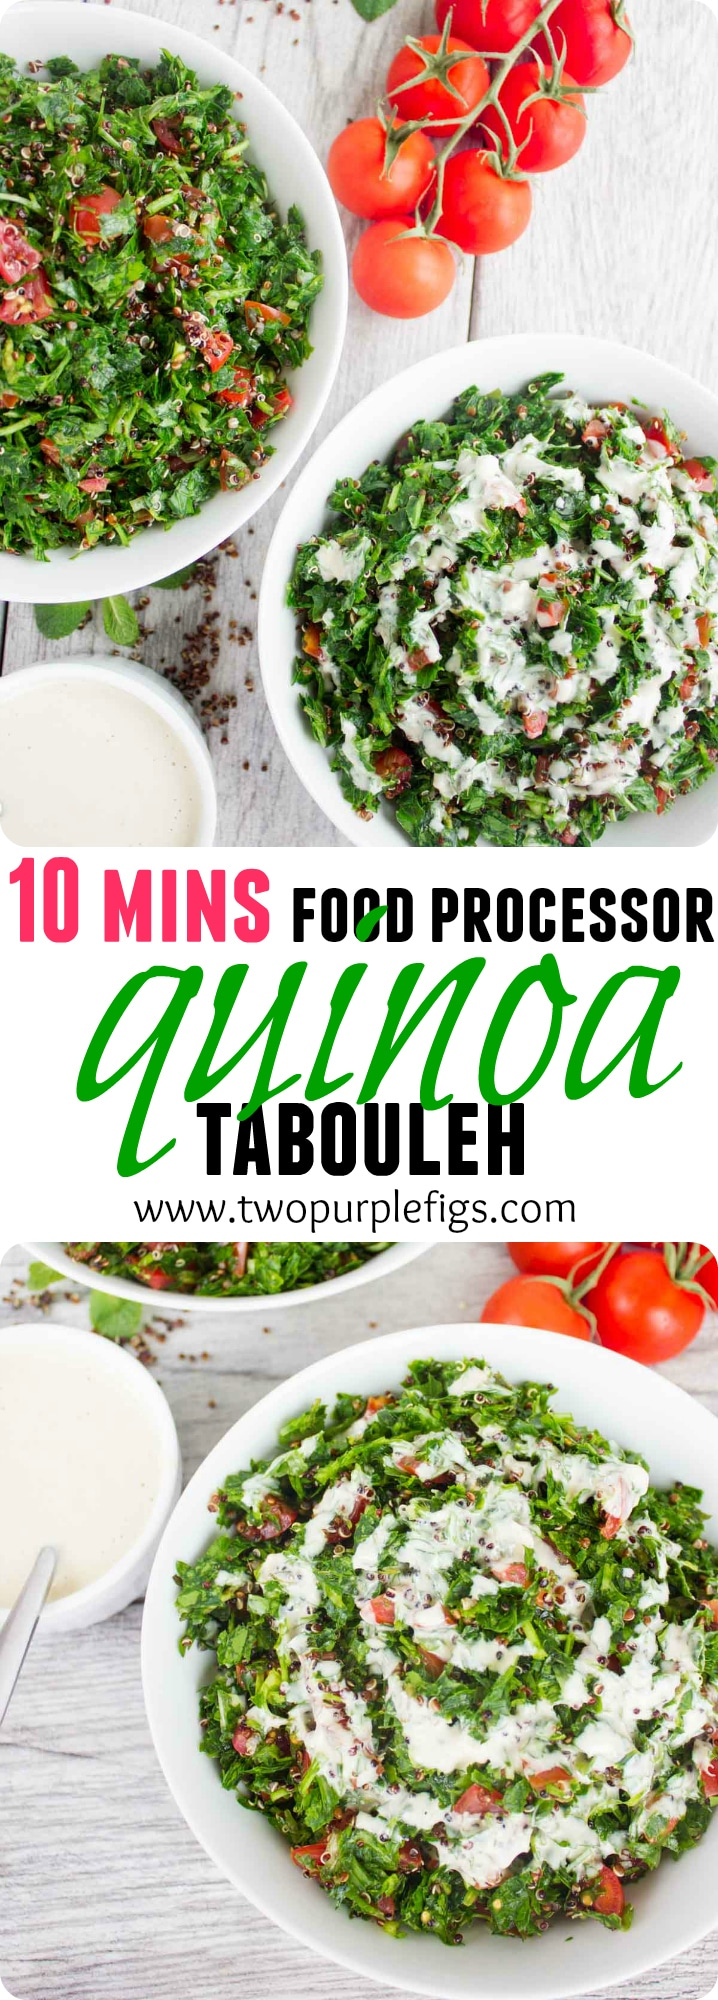 This Quick Quinoa Tabouleh with Tahini Dressing recipe is the best tabouleh recipe you can imagine, - all made in a food processor. The quinoa makes this traditional Lebanese salad gluten-free while adding a bunch of nutritional value and texture! #lunchrecipes, #easyrecipes, #healthysalad, #healthymealprep